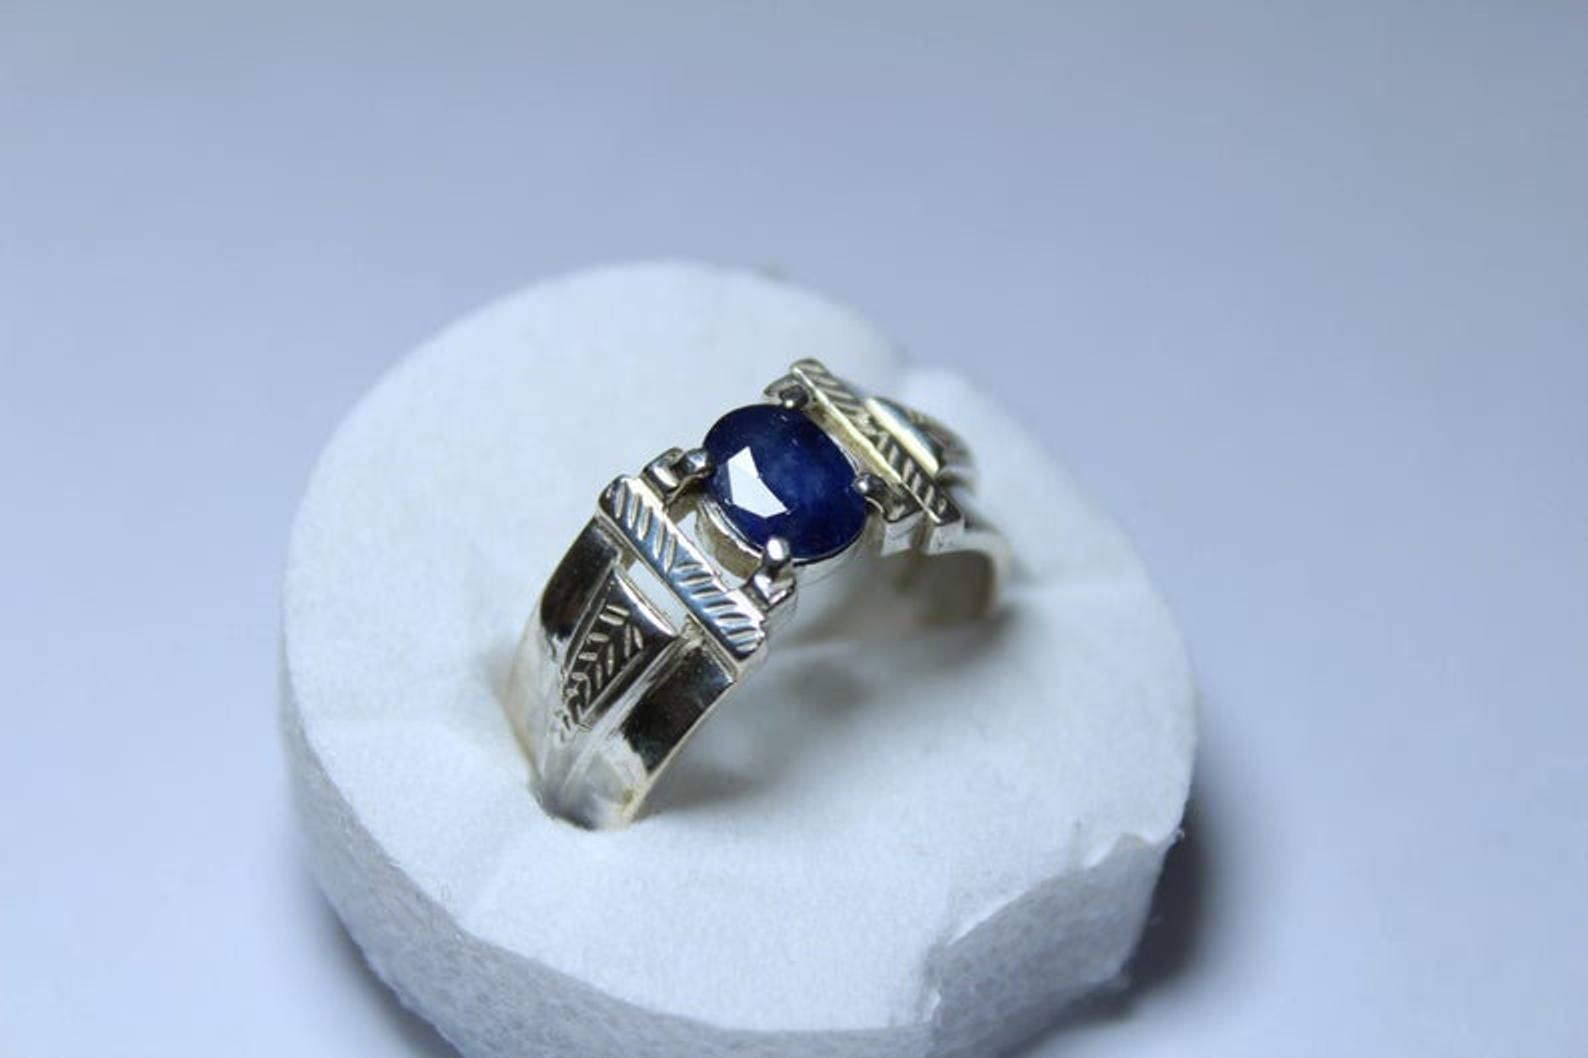 AAA QUALITY STERLING 925 SILVER HANDCRAFT JEWELRY  CEYLON BLUE SAPPHIRE BAND RIN